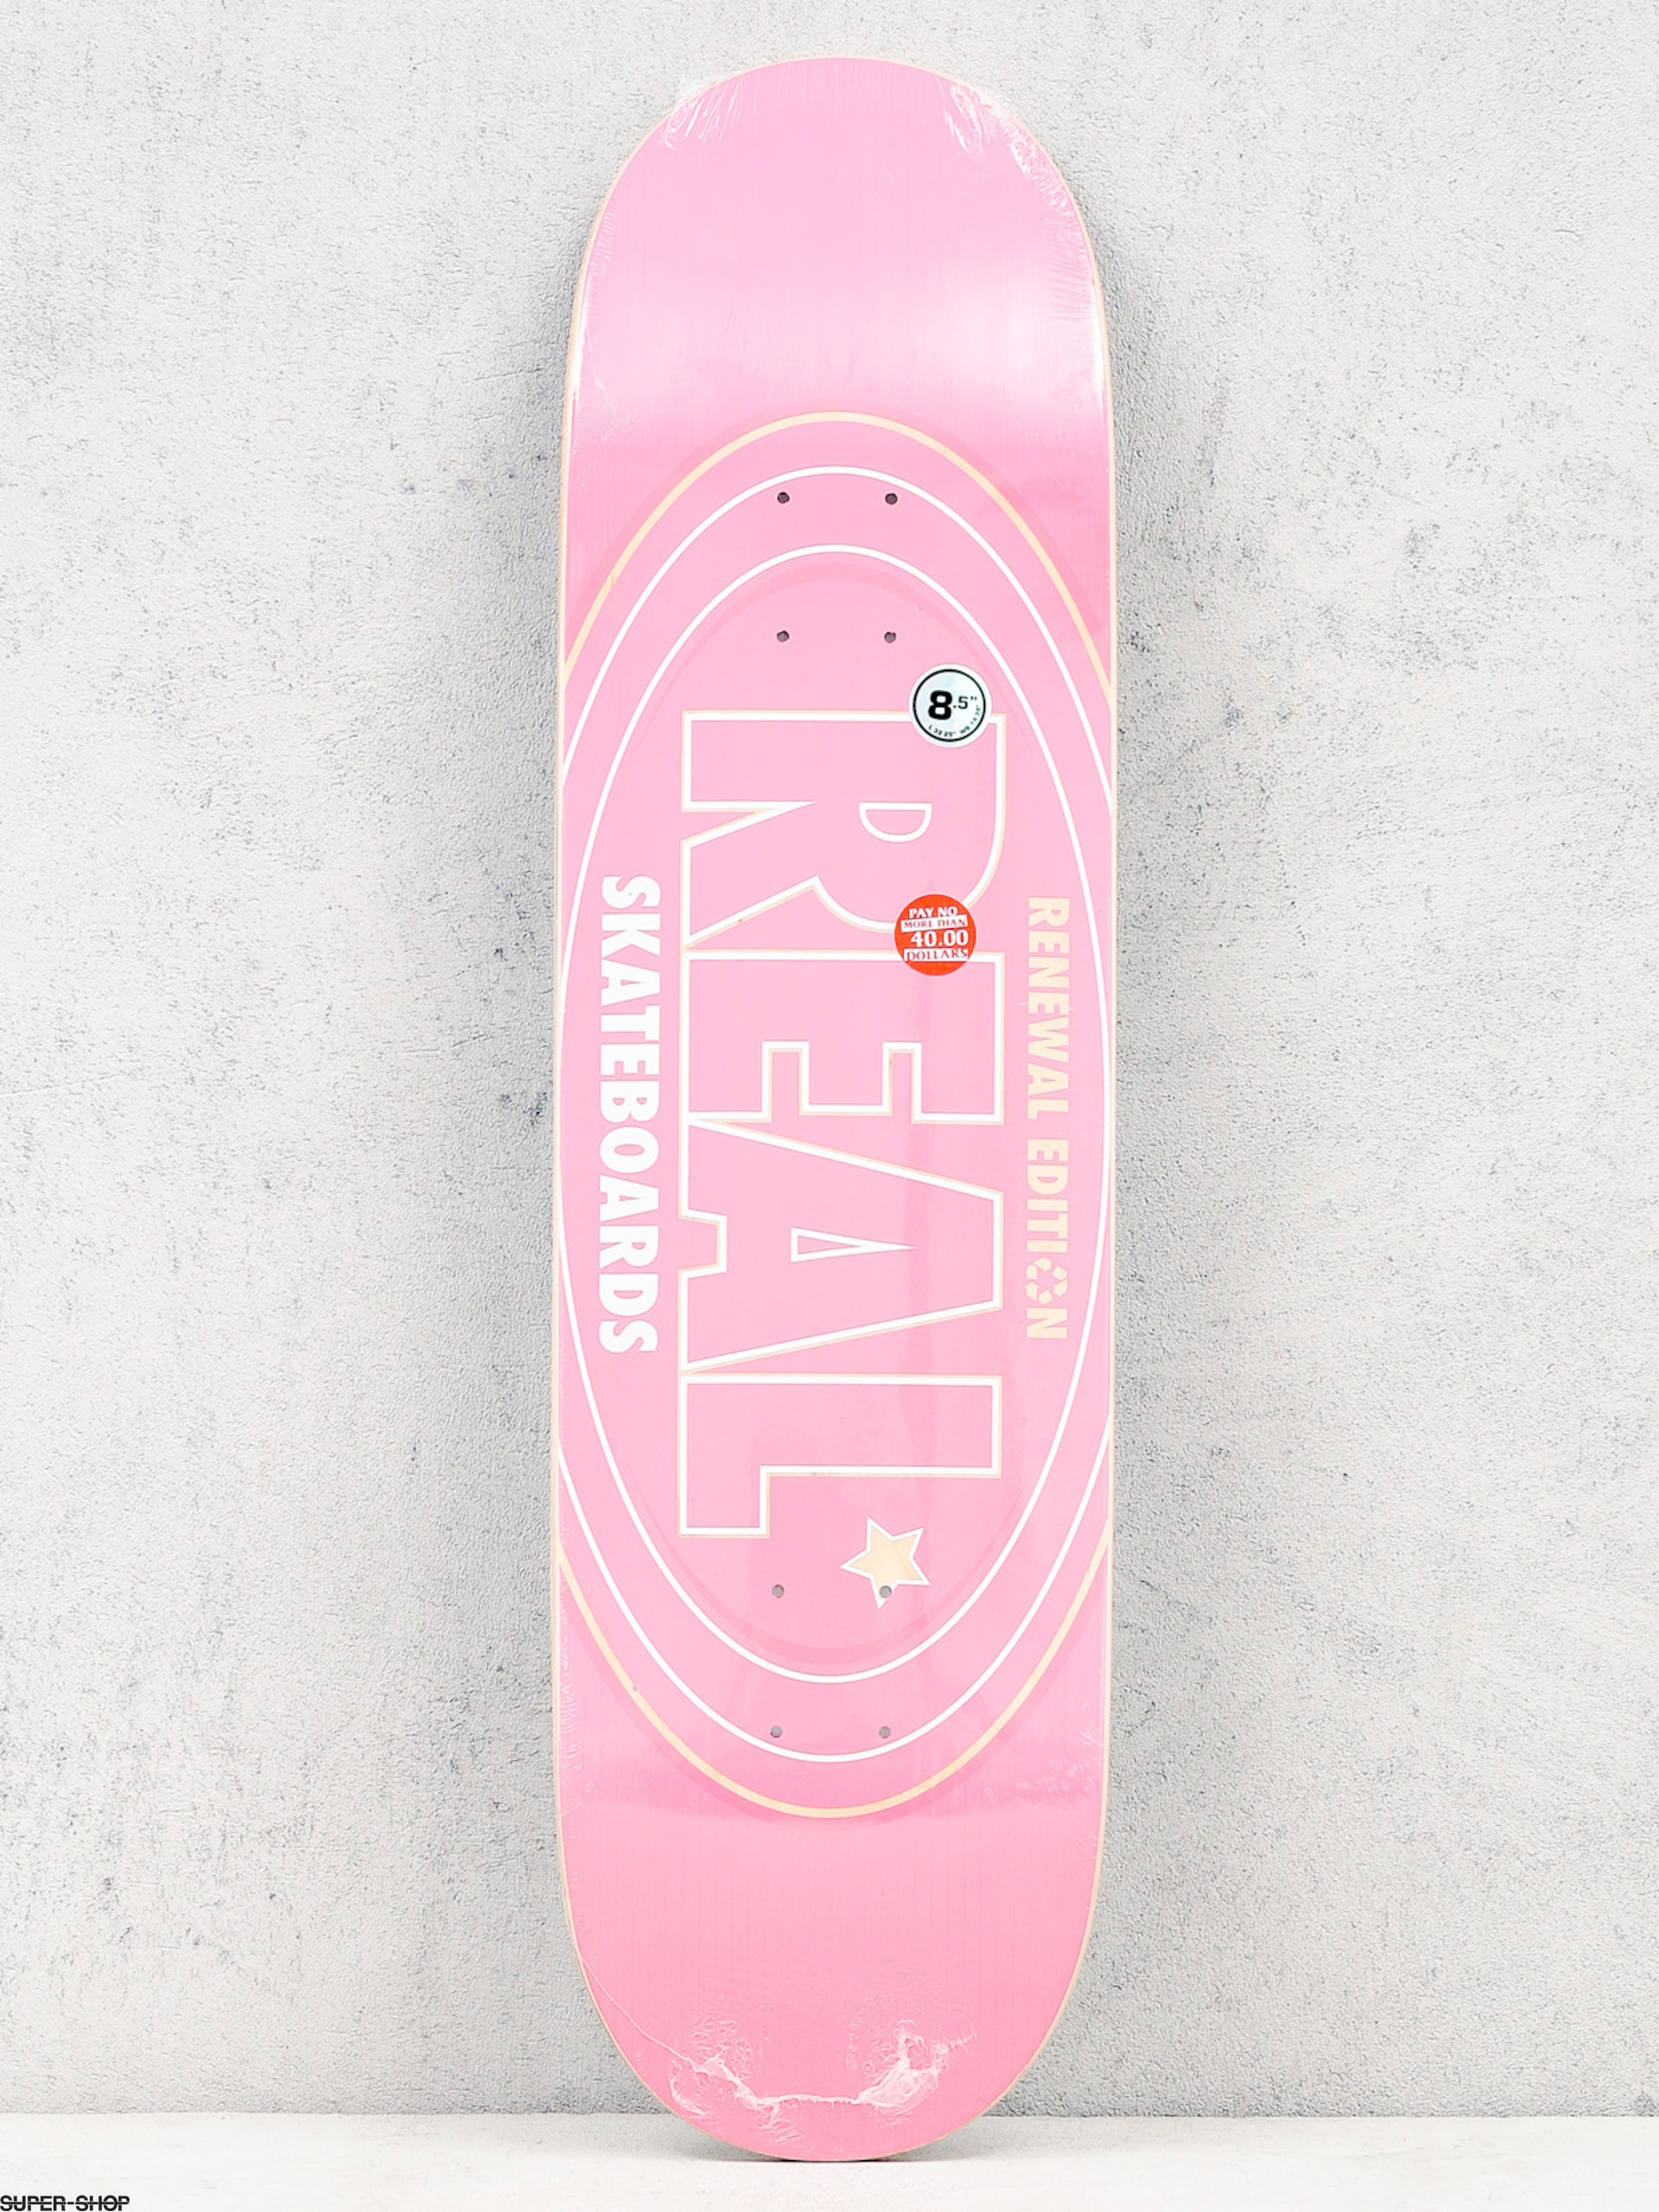 Real Deck Oval Renewal (pink)